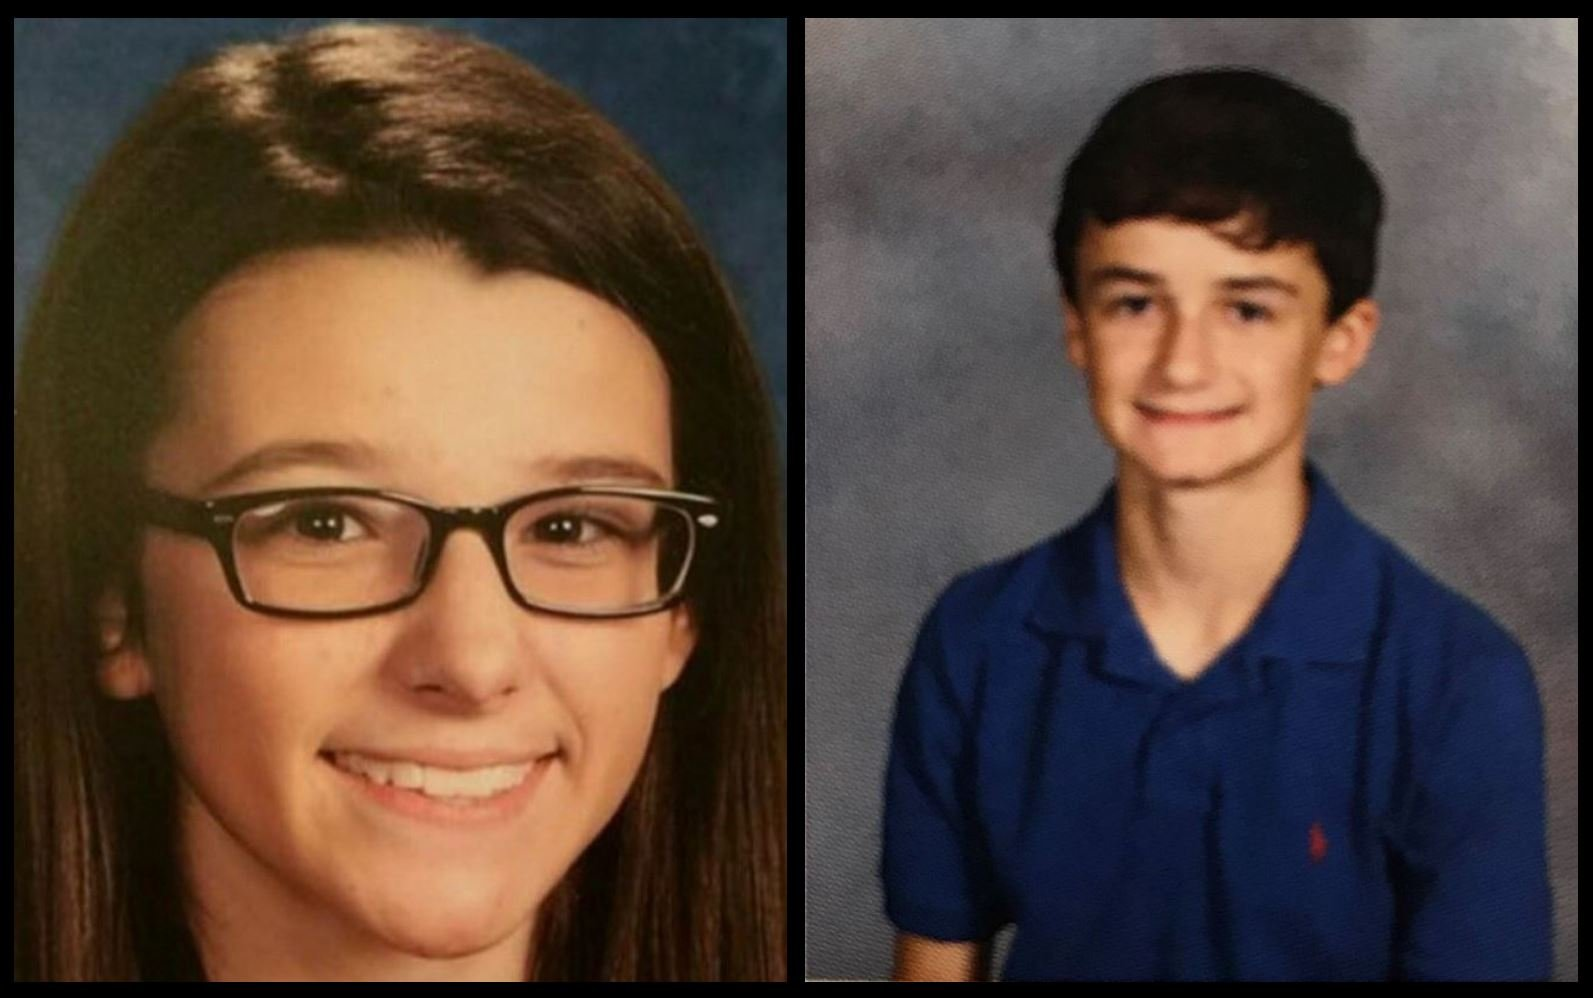 Bailey Nicole Holt and Preston Ryan Cope. Both were 15 years old.